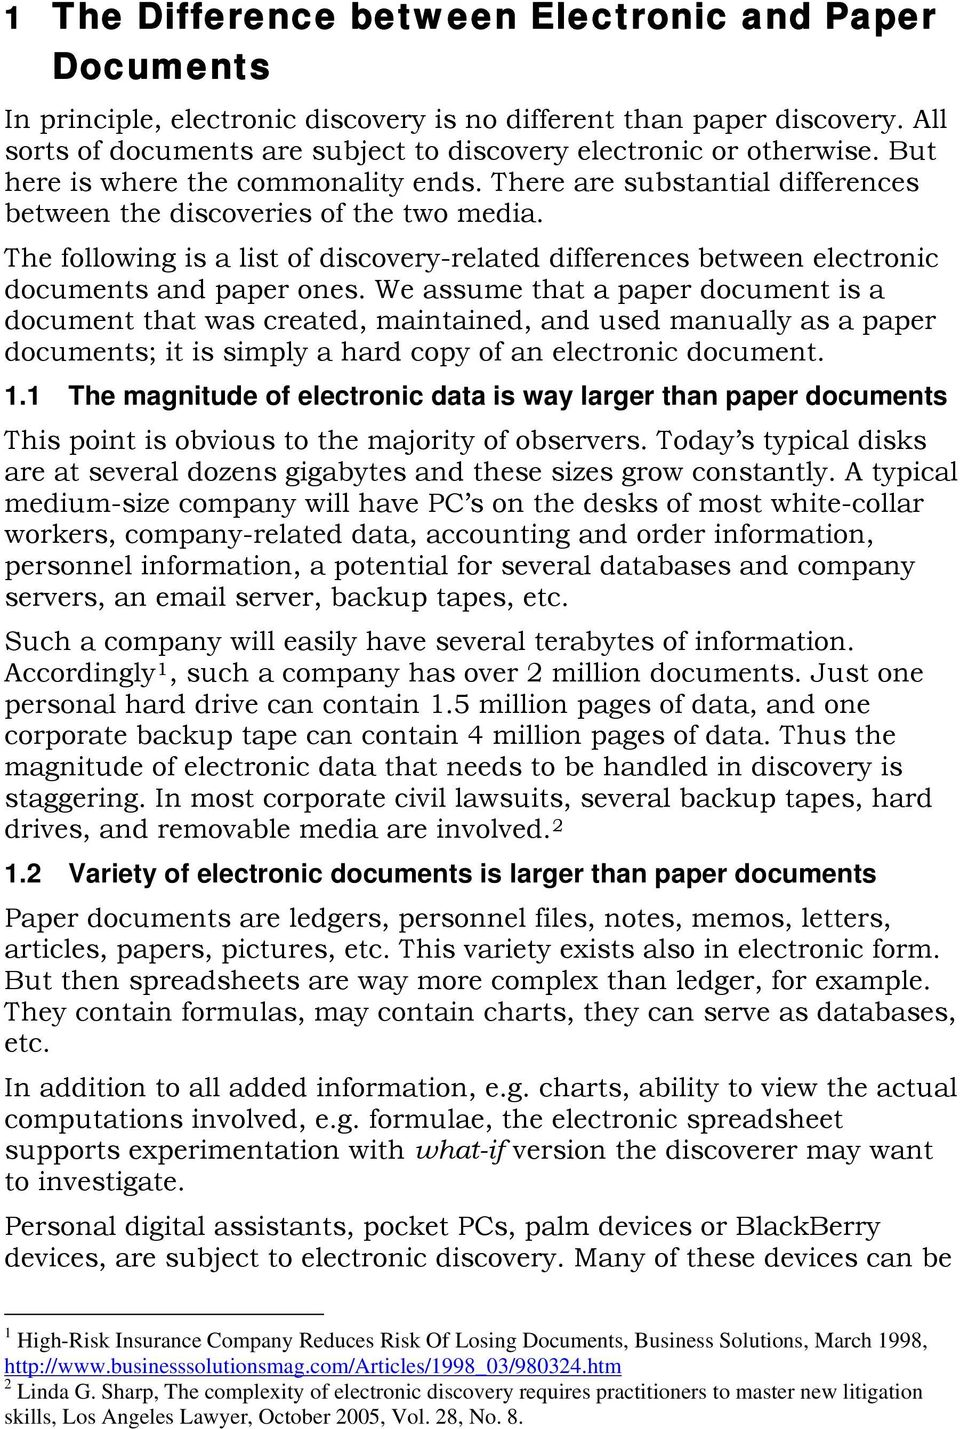 The following is a list of discovery-related differences between electronic documents and paper ones.